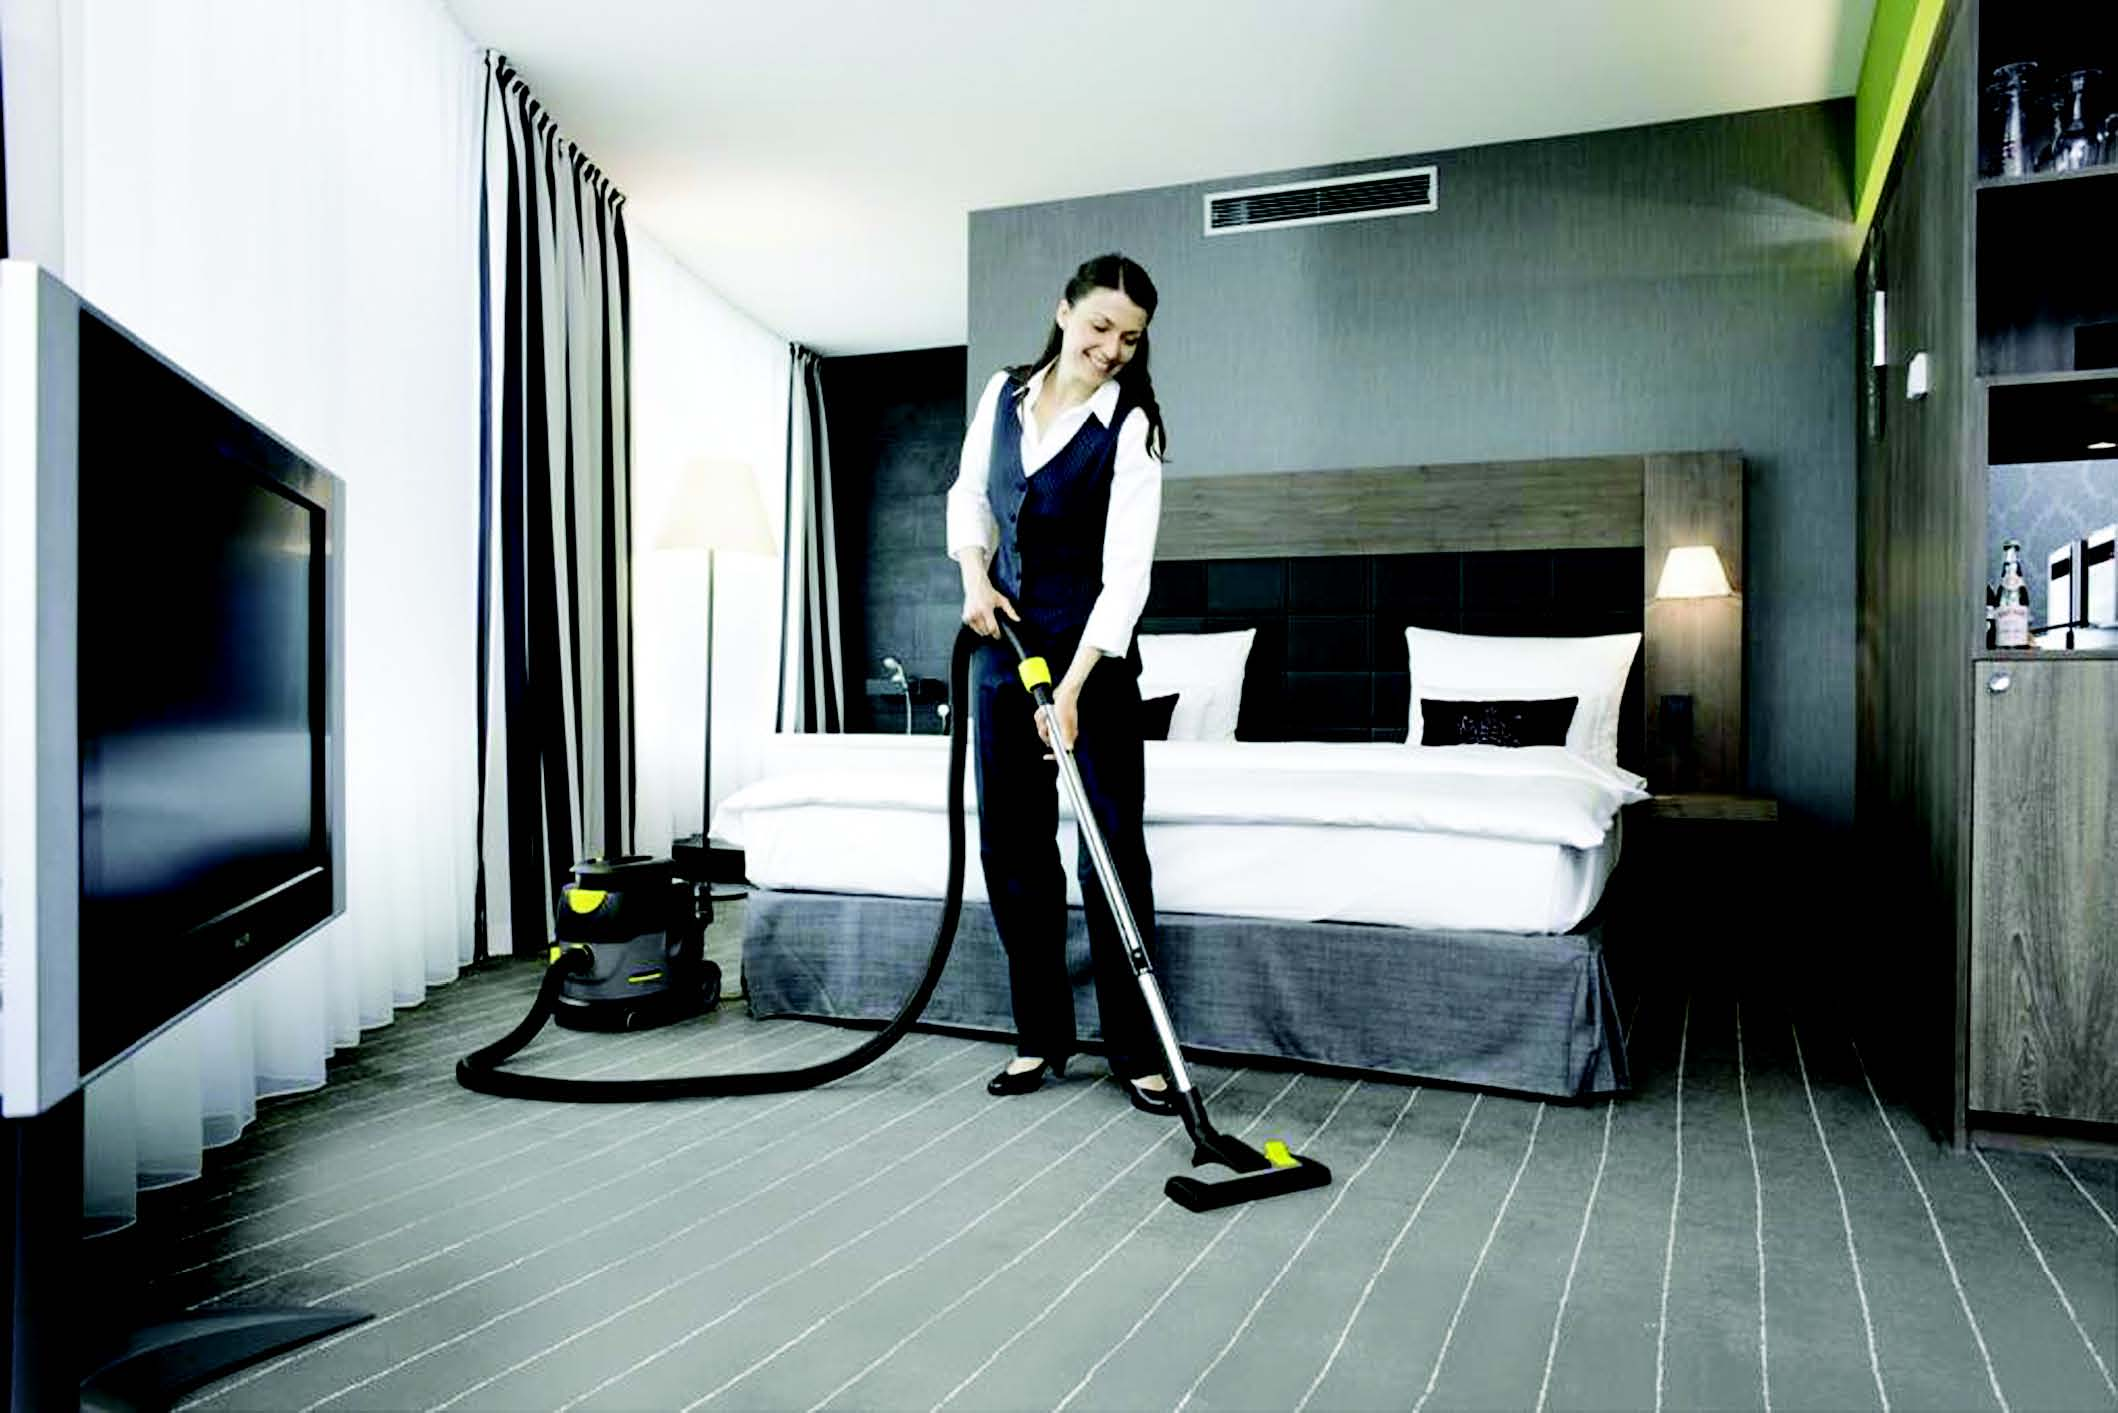 hospitality biz india hotel housekeeping the economics of